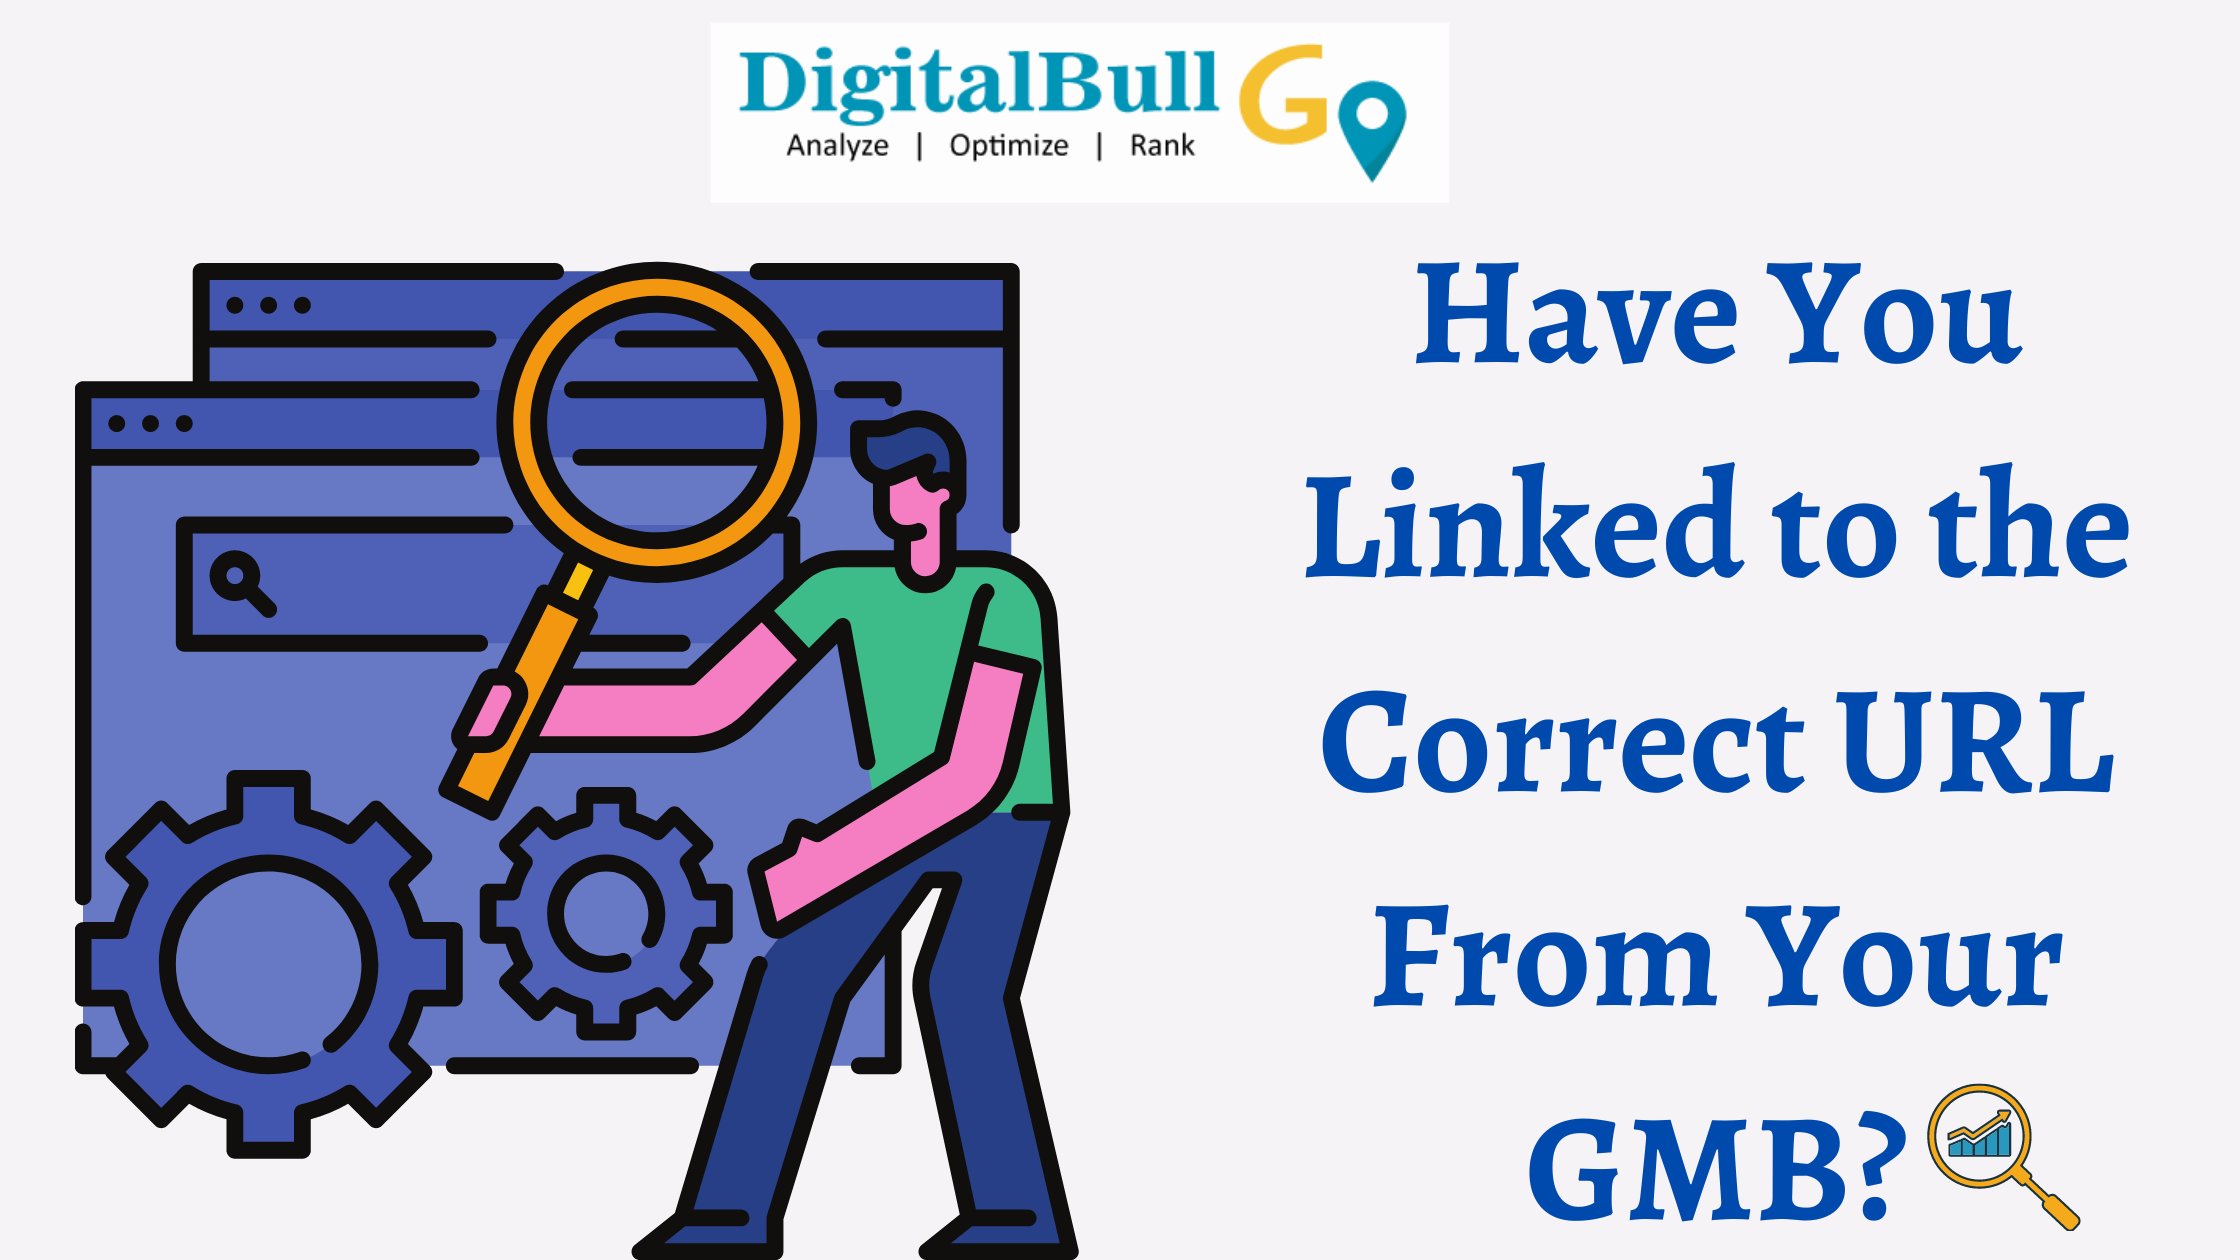 DigitalBull GO Have You Linked to the Correct URL From Your GMB? 18